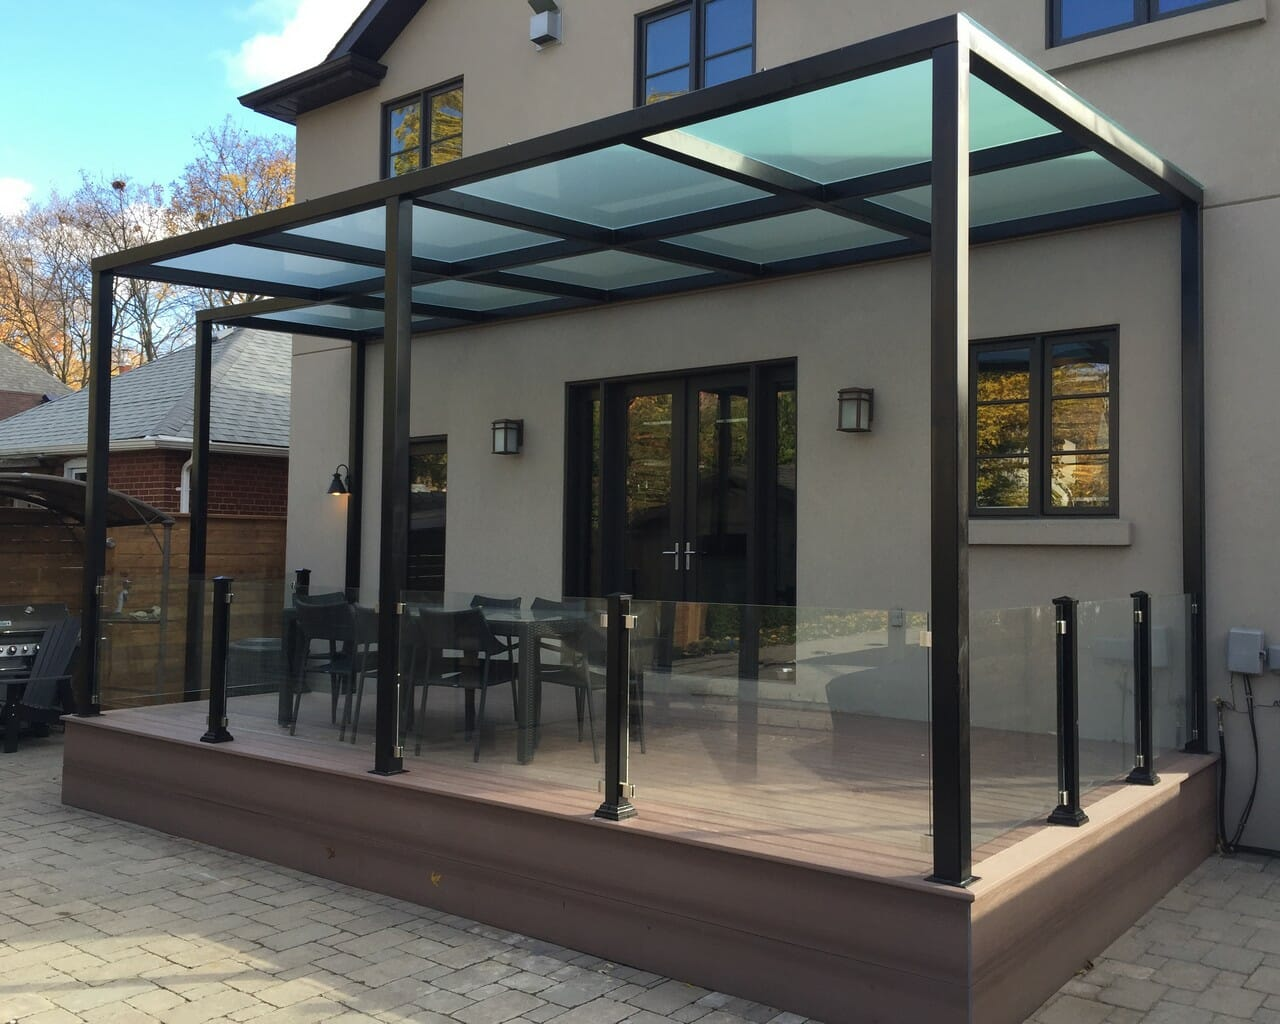 Pvc Deck With Pergola And Glass Railings M E Contracting Toronto Landscaping